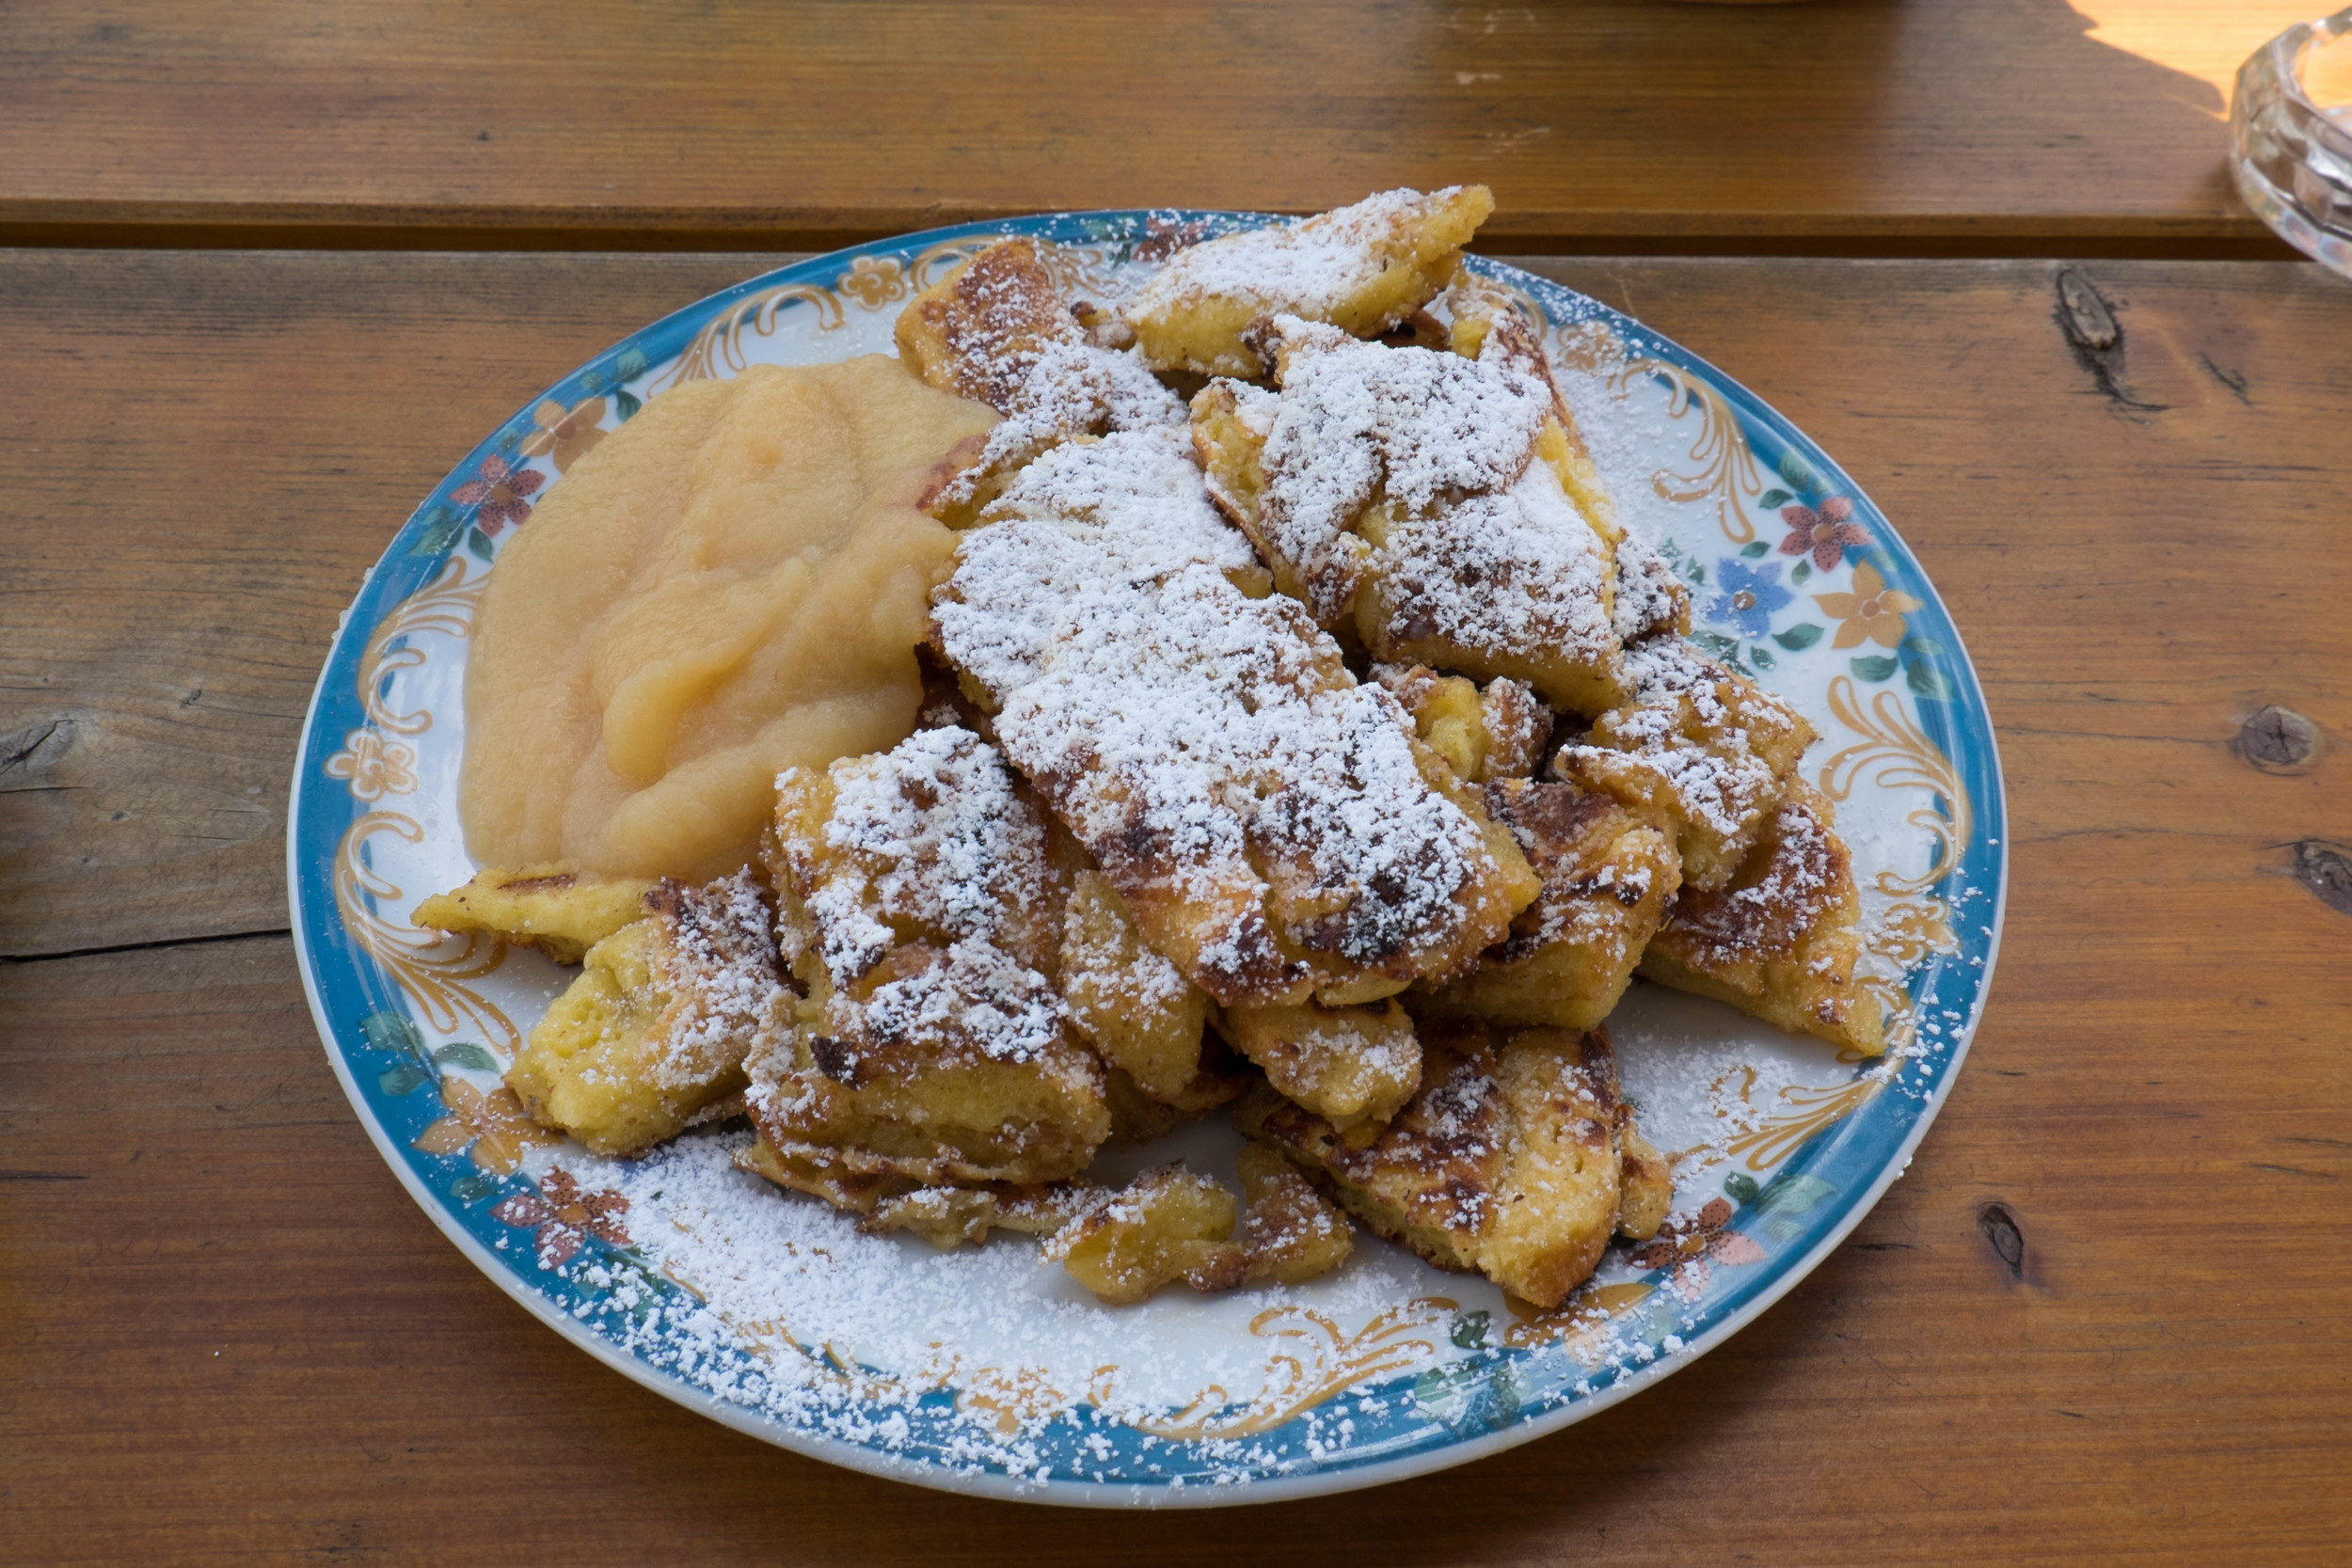 Lunchtime!  Kaiserschmarrn m Apfelmus - German apple pancakes.  Again, I was so surprised to see such sweet dishes as main dish items!  Nonetheless, I didn't complain and delightfully enjoyed this dish!